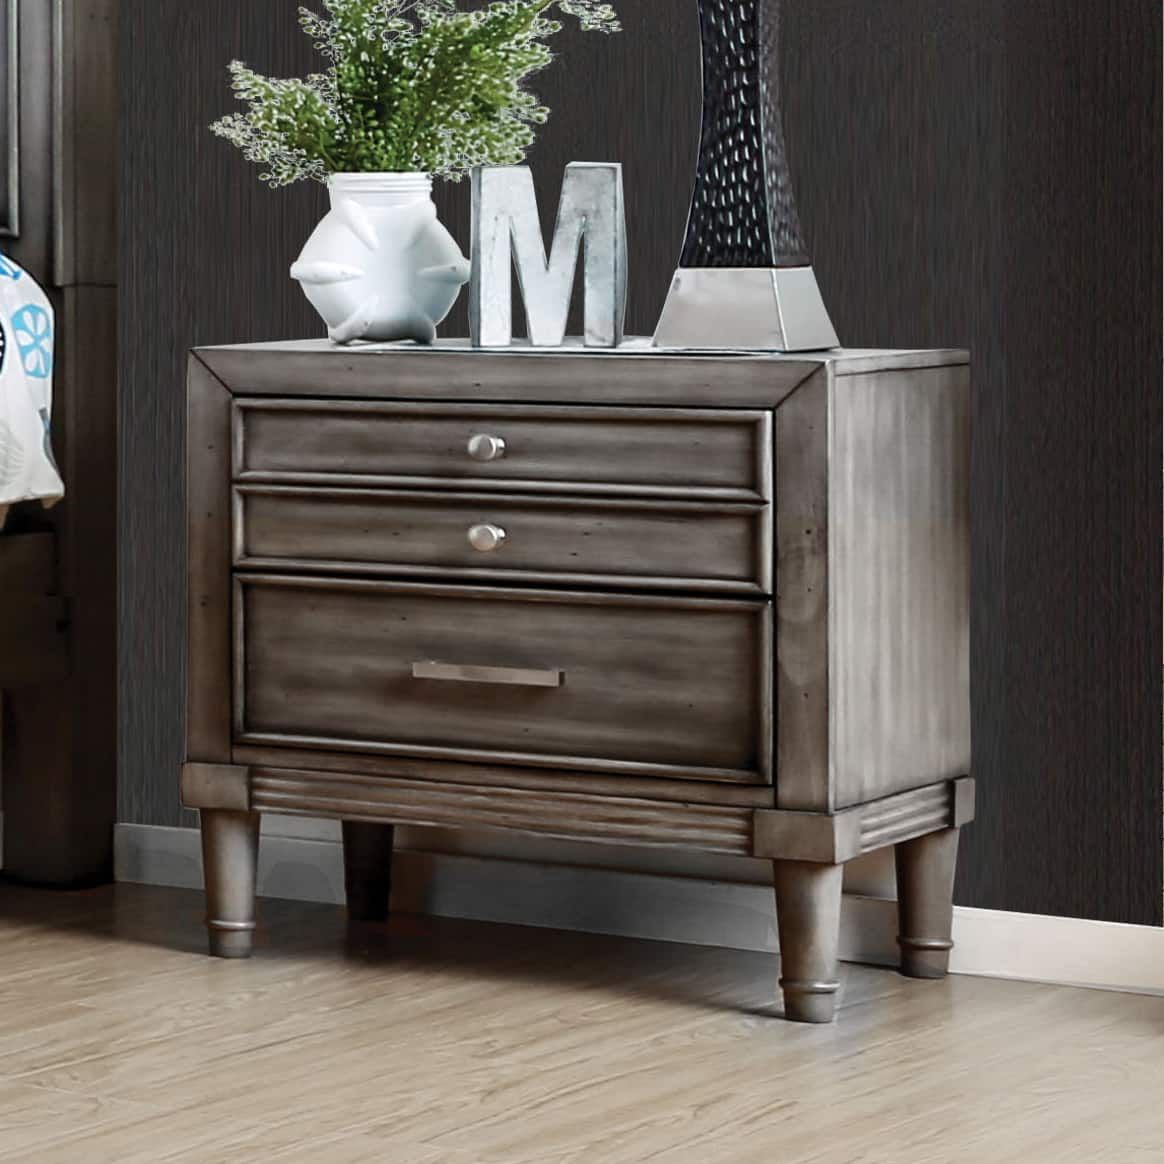 Furniture of america kerilan transitional 3 drawer grey nightstand with hidden drawer